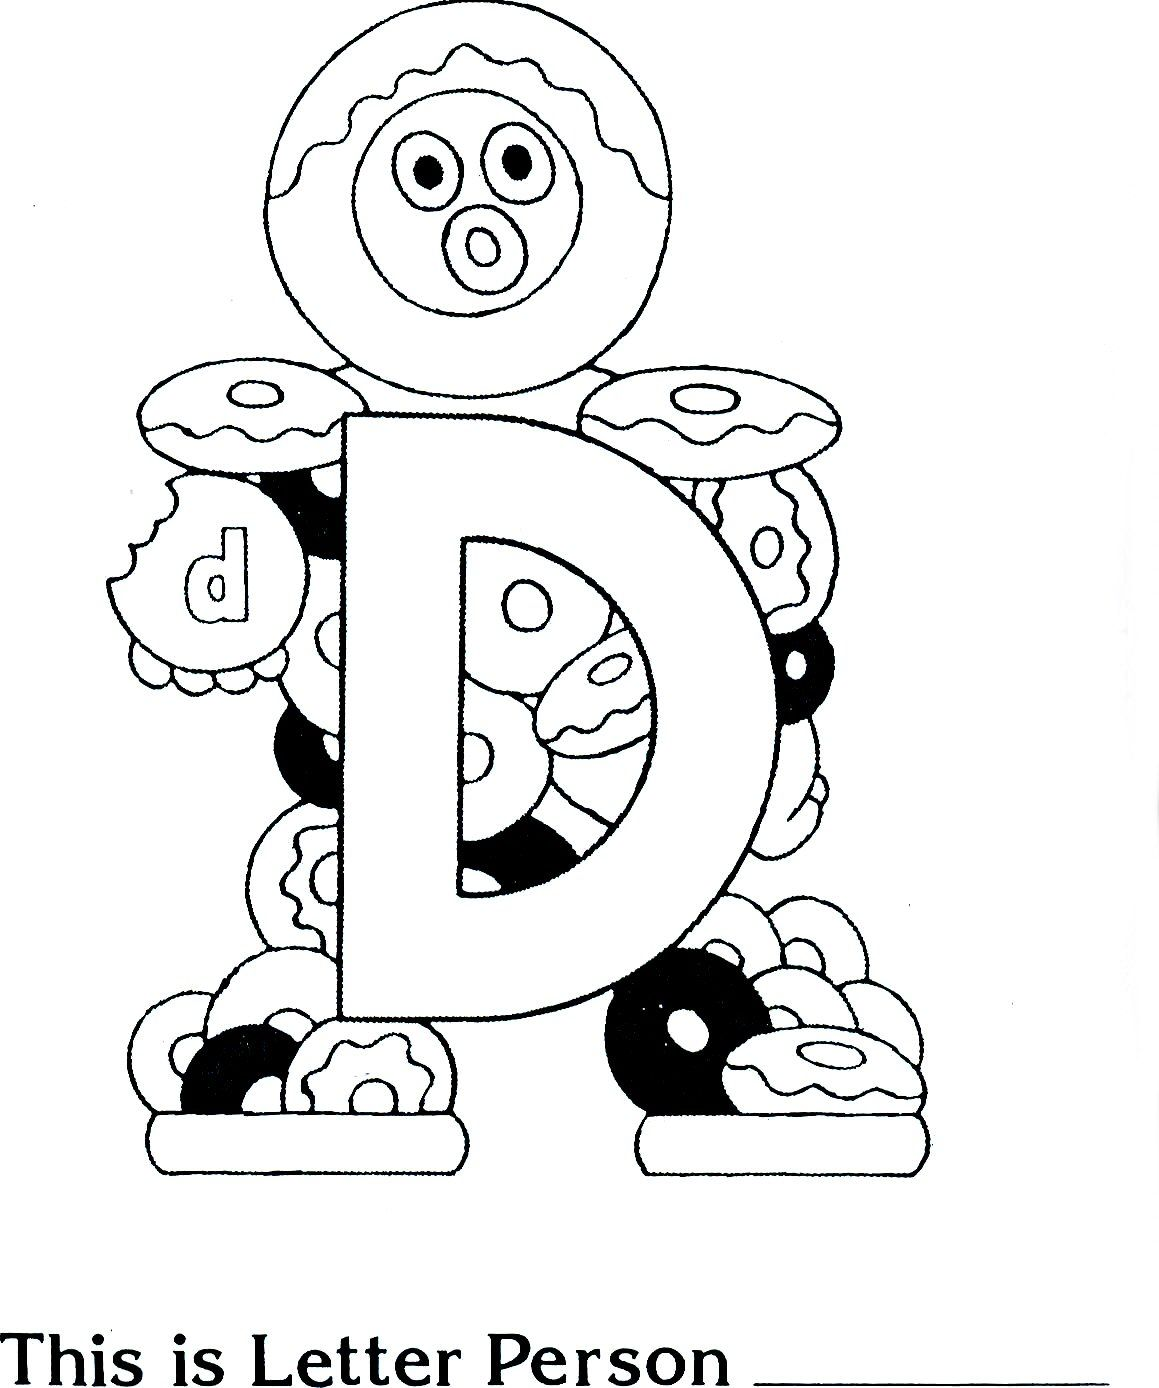 D Is For Doughnuts Preschool Coloring Sheet I Love These Letter People